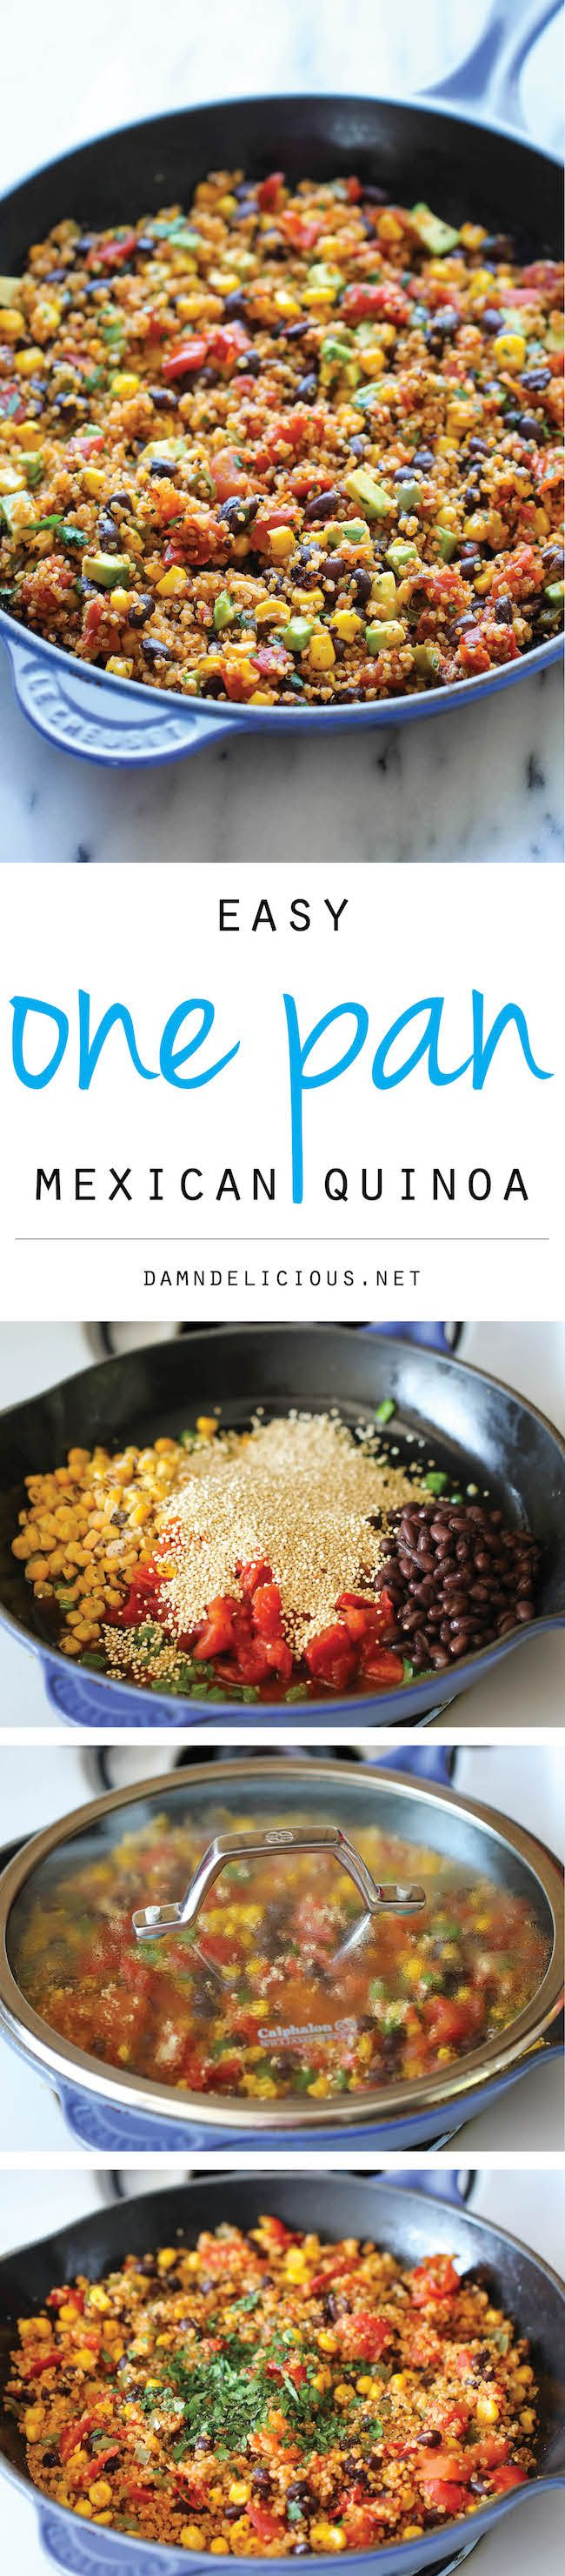 One Pan Mexican Quinoa Wonderfully Light, Healthy And Nutritious And It's  So Easy To Make How To Cook